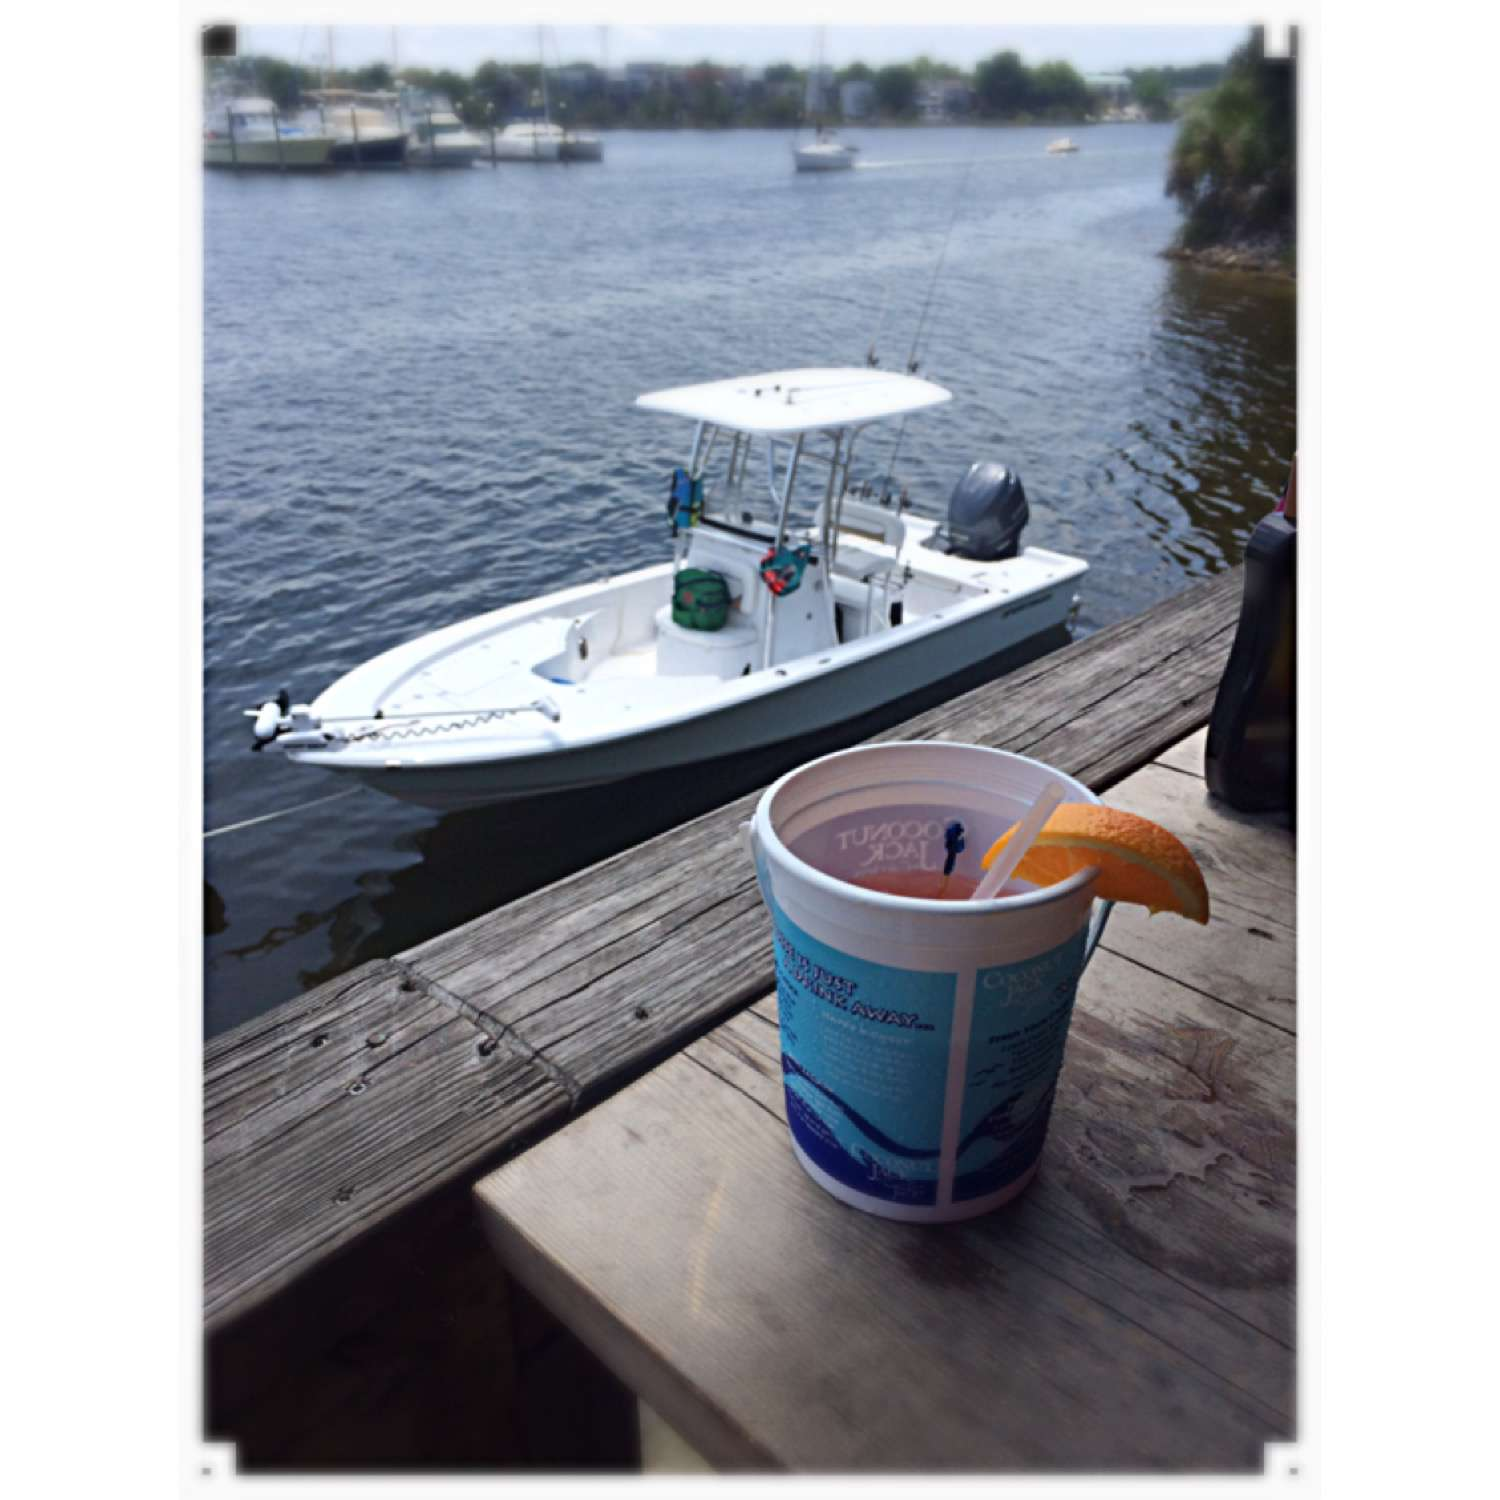 Title: Cheers To A Good Day On The Water! - On board their Sportsman Masters 247 Bay Boat - Location: Cantonment, Florida. Participating in the Photo Contest #SportsmanAugust2016